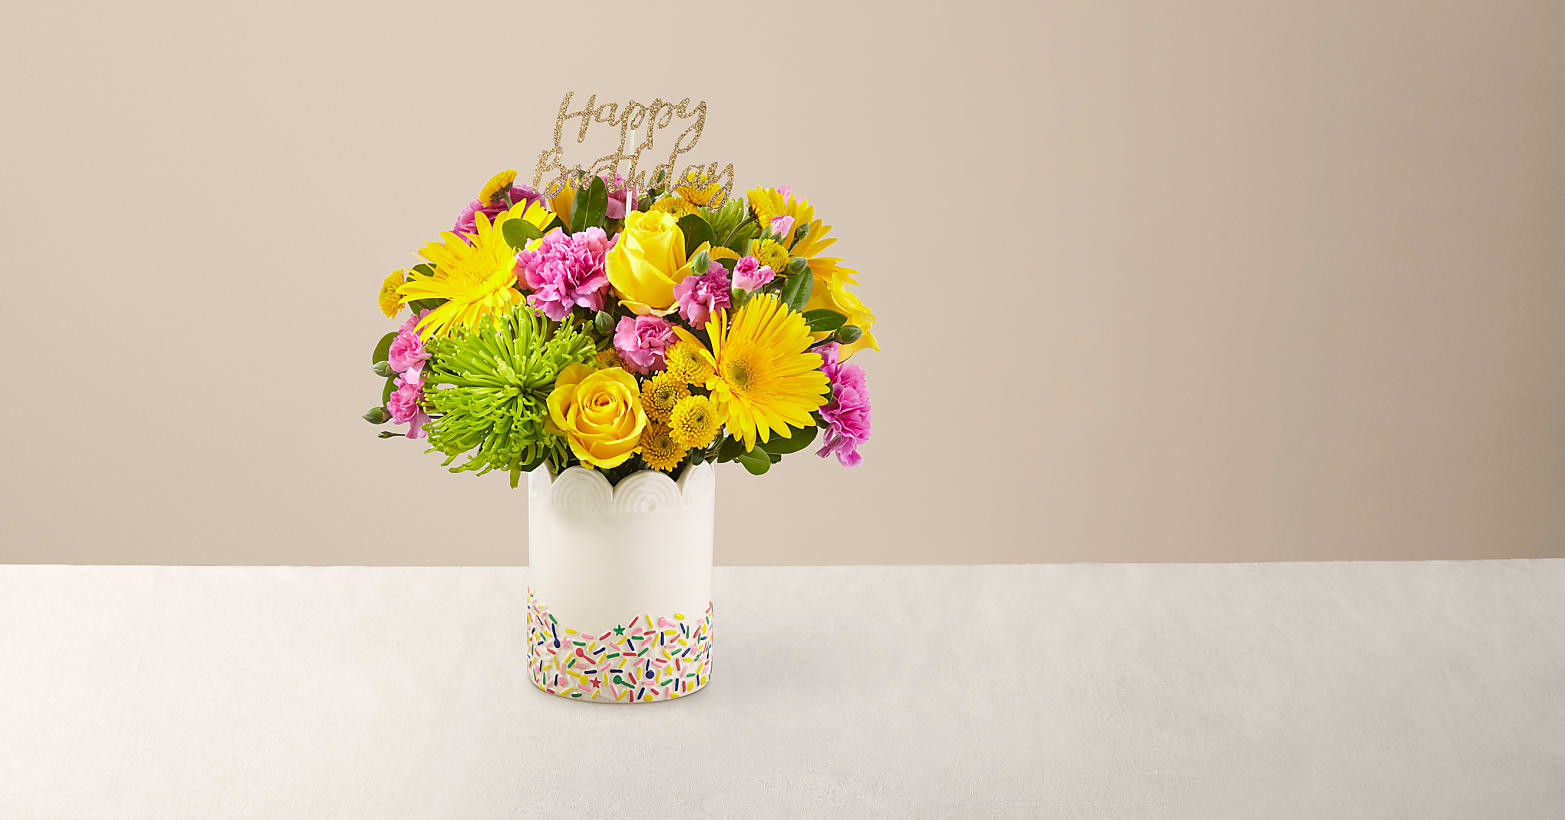 Birthday Sprinkles Bouquet - Image 1 Of 3